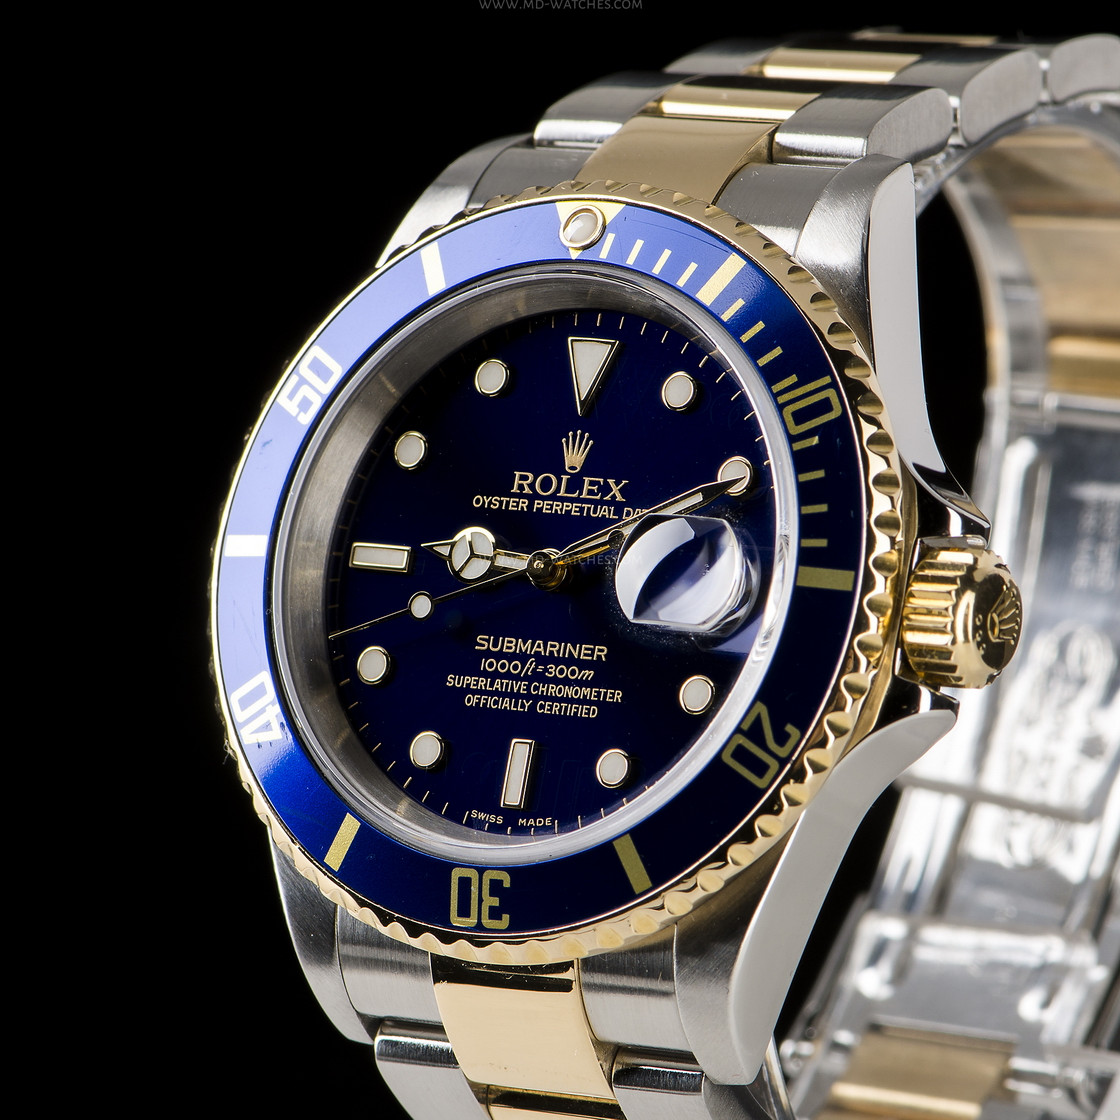 Rolex Submariner Date Ref 16613LB Two,tone gold/steel , 40mm